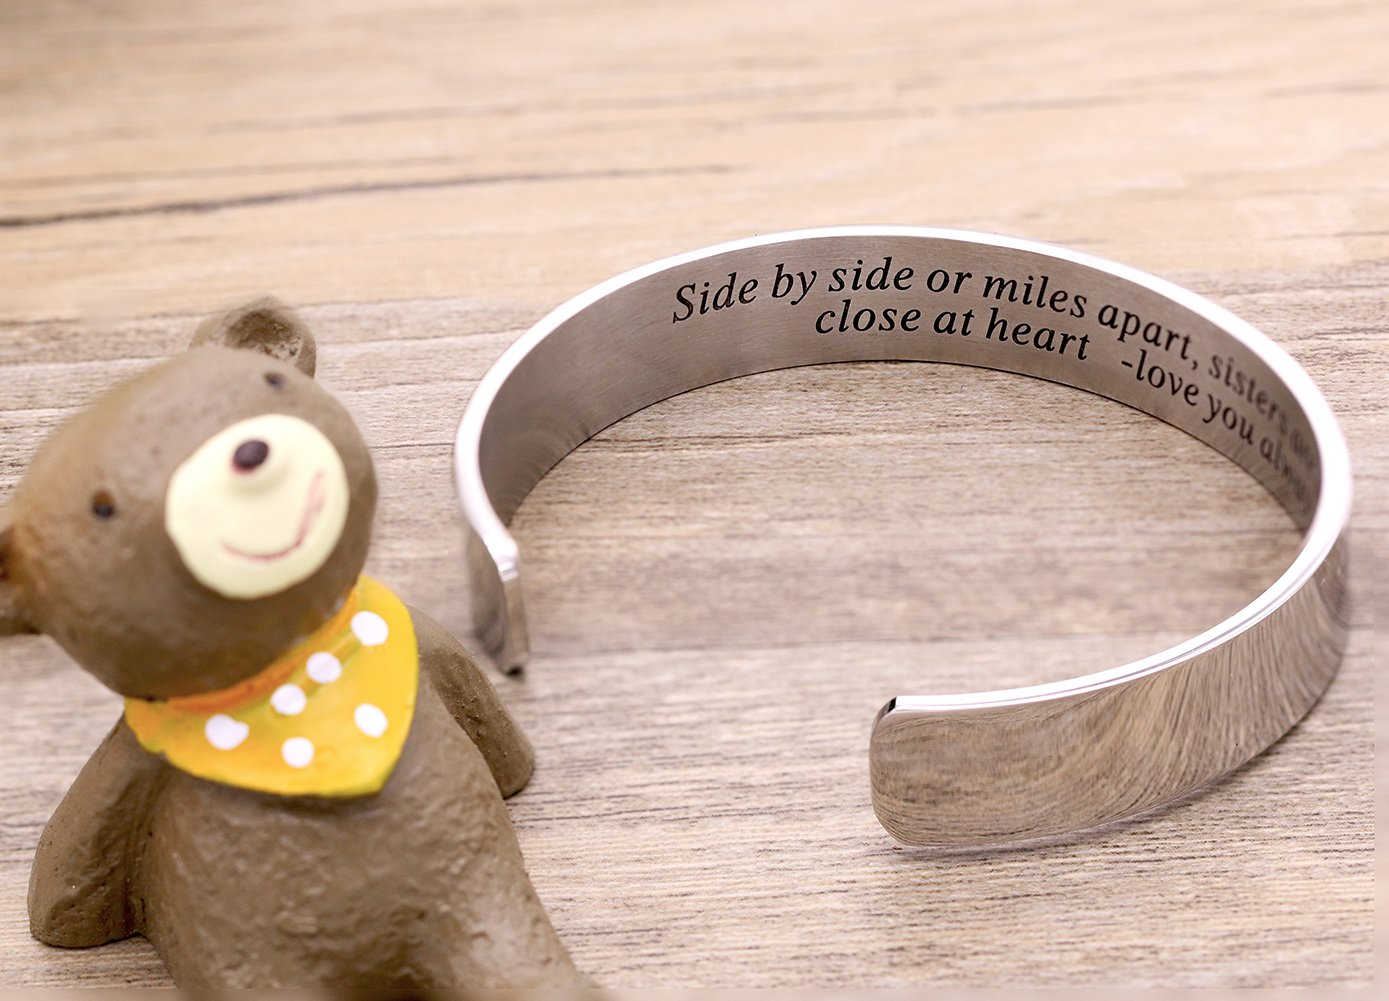 Side By Side Or Miles Apart Bracelet Stainless Steel . Sister to Sister Gift ,Maid of Honor Gift / Bridesmaids Gifts (White) by Melix Home (Image #3)